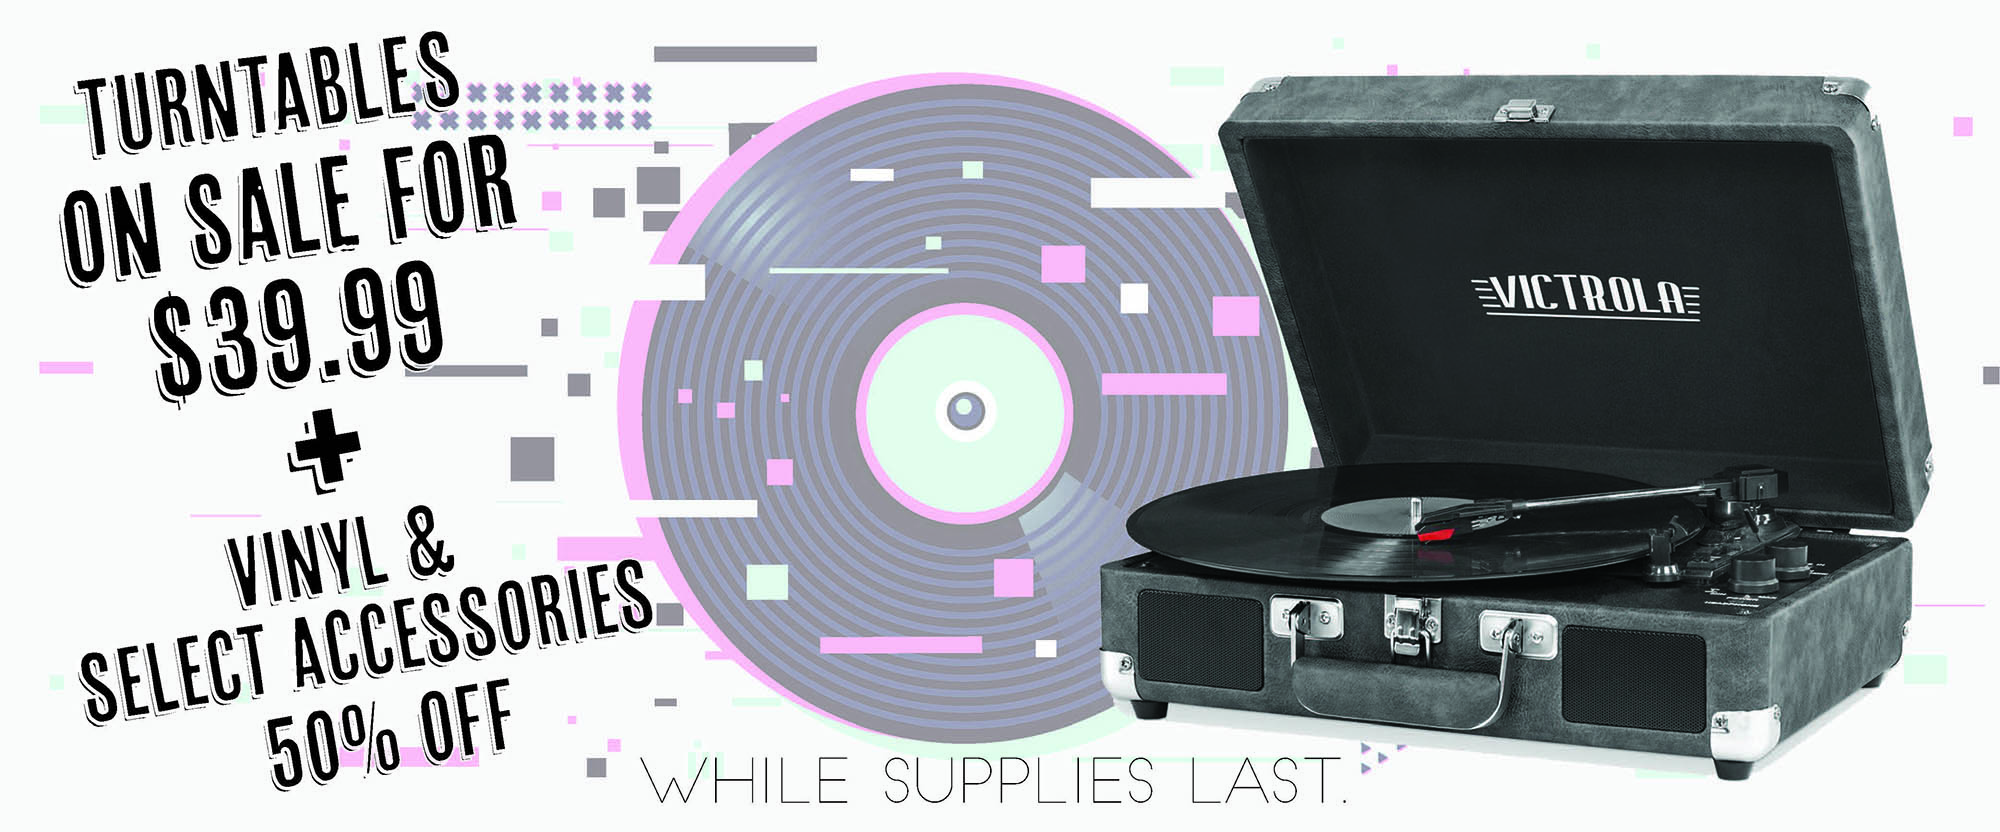 save on turntables this month